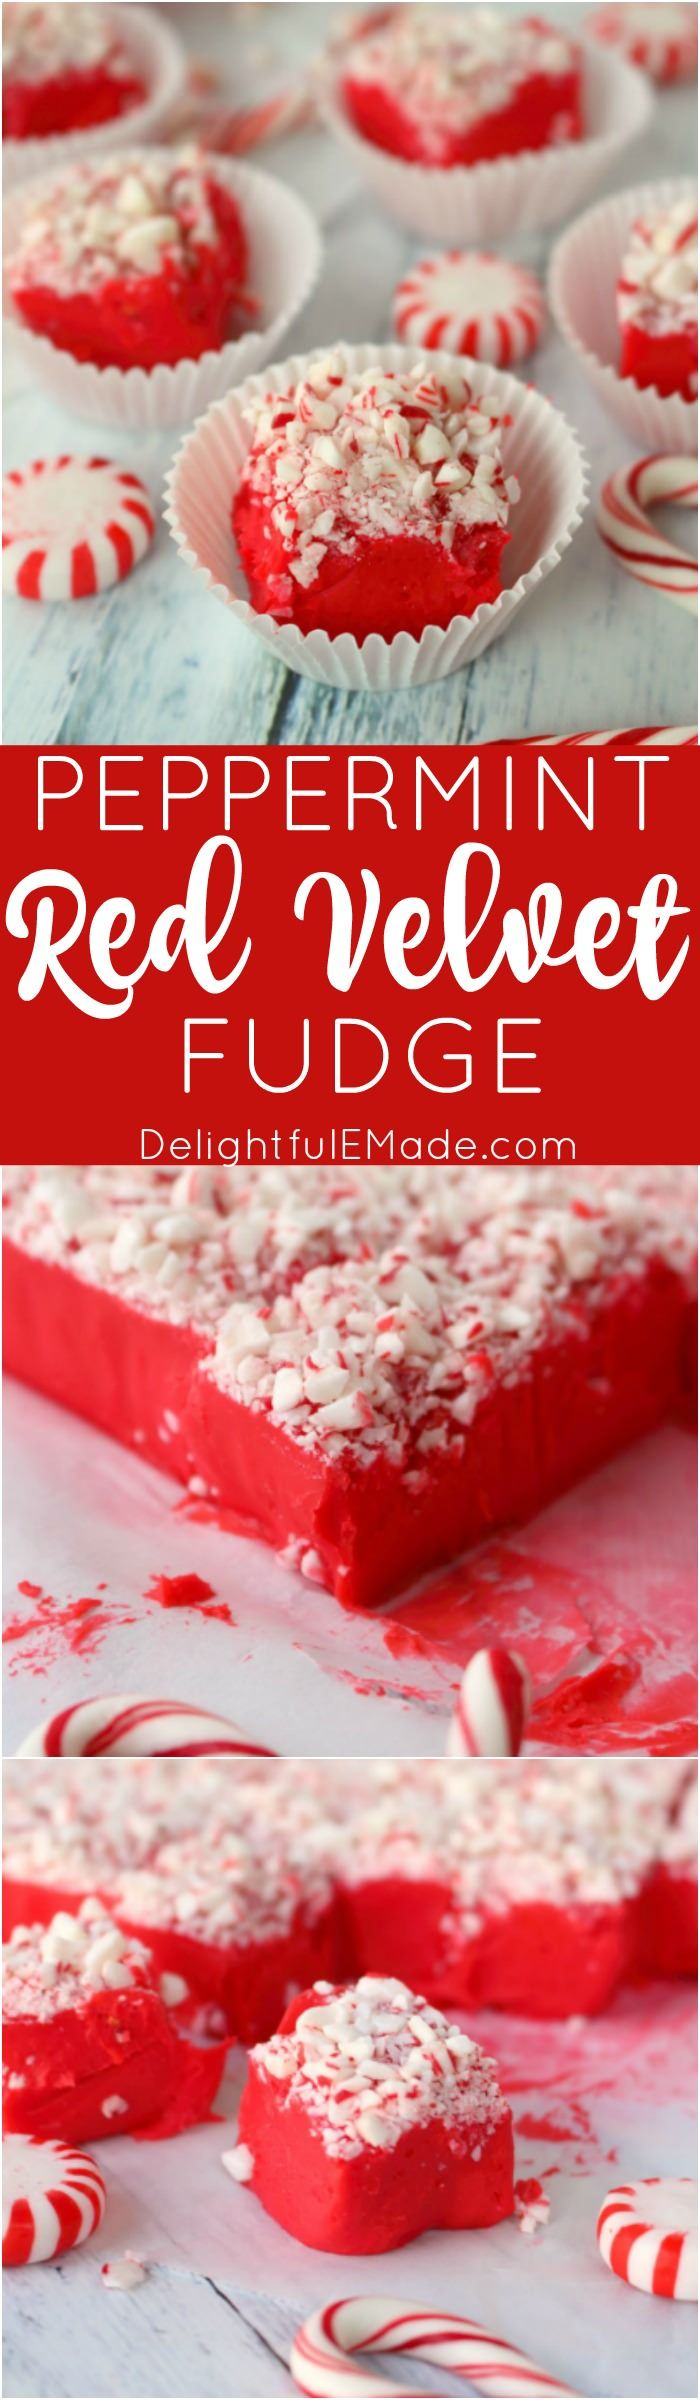 This gorgeous Peppermint Red Velvet Fudge is the perfect way to ring in the holiday season! This easy microwave fudge recipe is perfect for your holiday candy trays, cookie exchanges and Christmas parties!